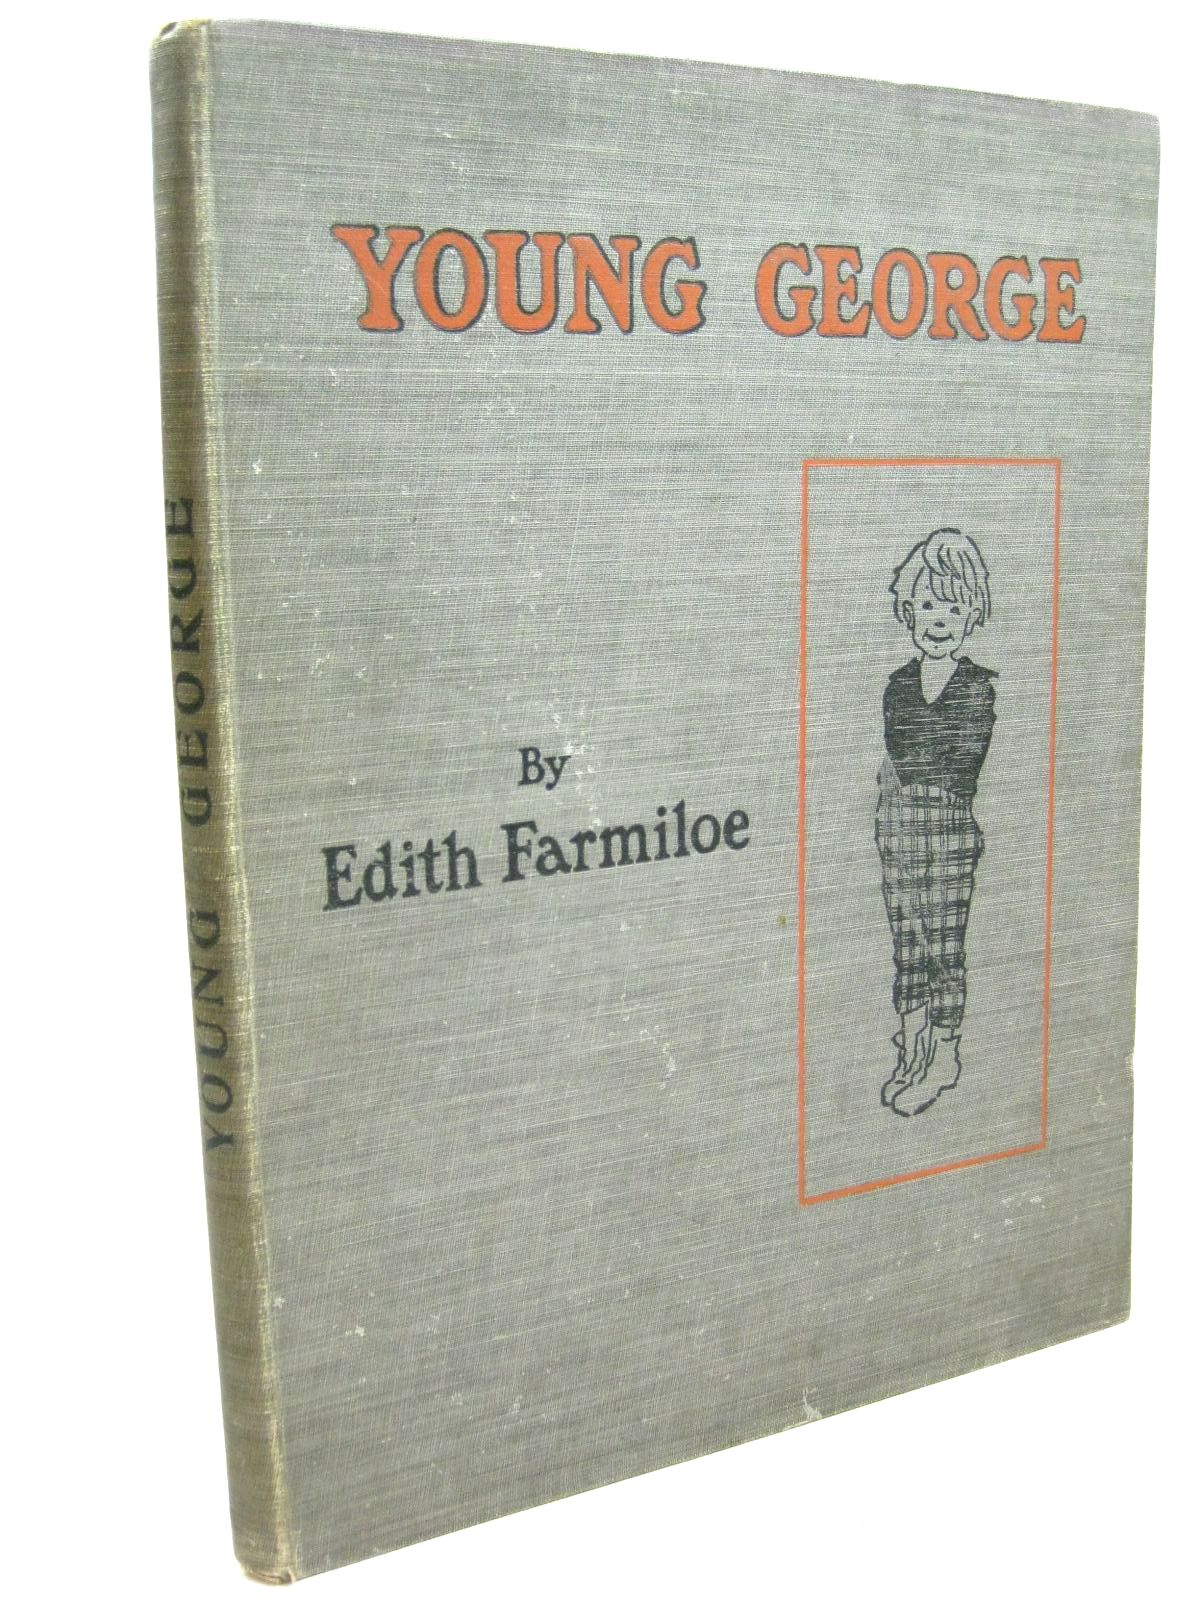 Photo of YOUNG GEORGE - HIS LIFE written by Farmiloe, Edith illustrated by Farmiloe, Edith published by William Heinemann (STOCK CODE: 1506163)  for sale by Stella & Rose's Books